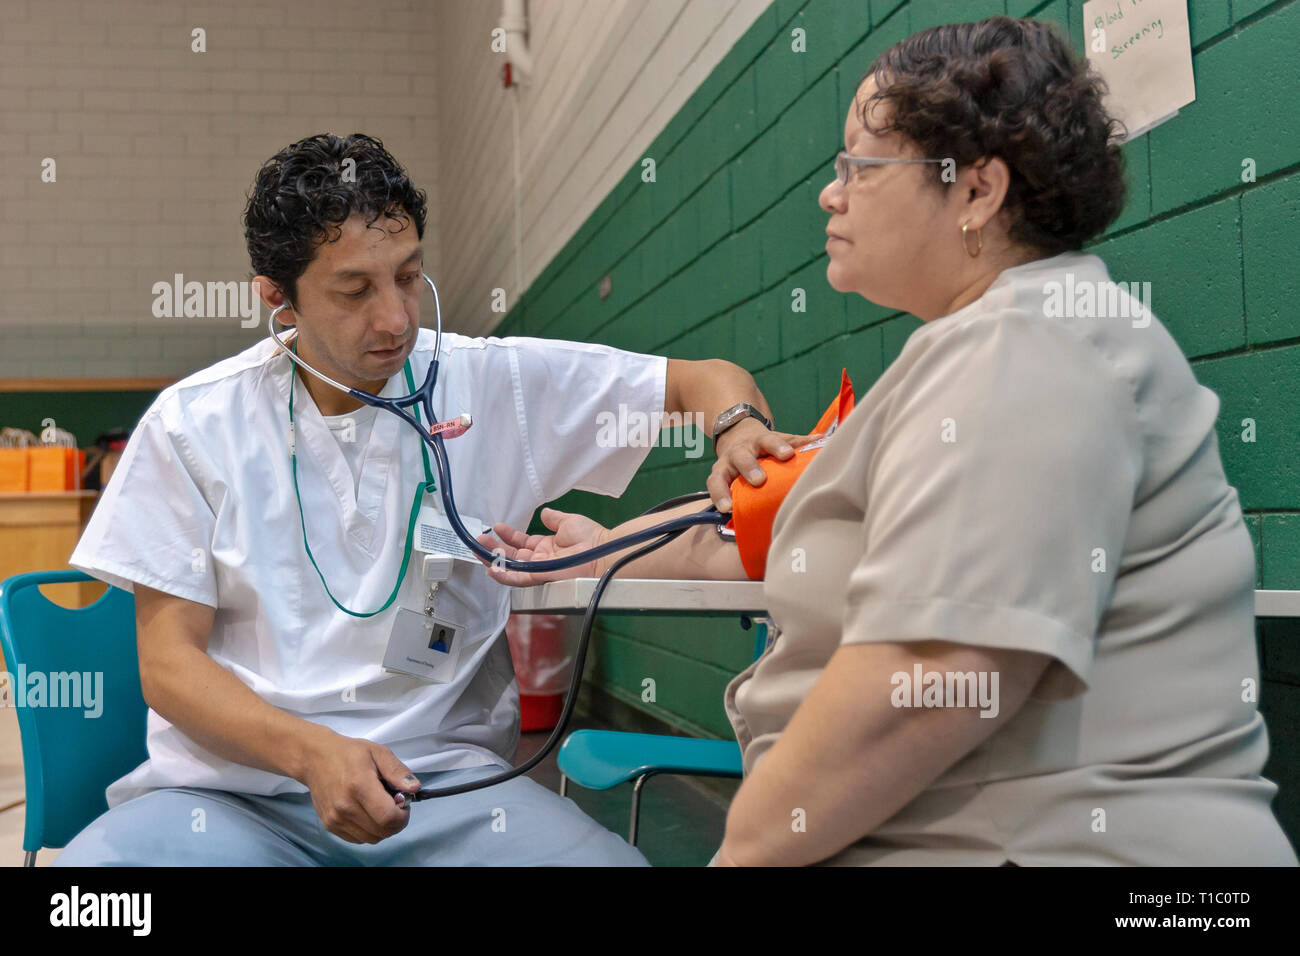 A male nurse takes the blood pressure of a middle-aged woman in a community outreach program. - Stock Image